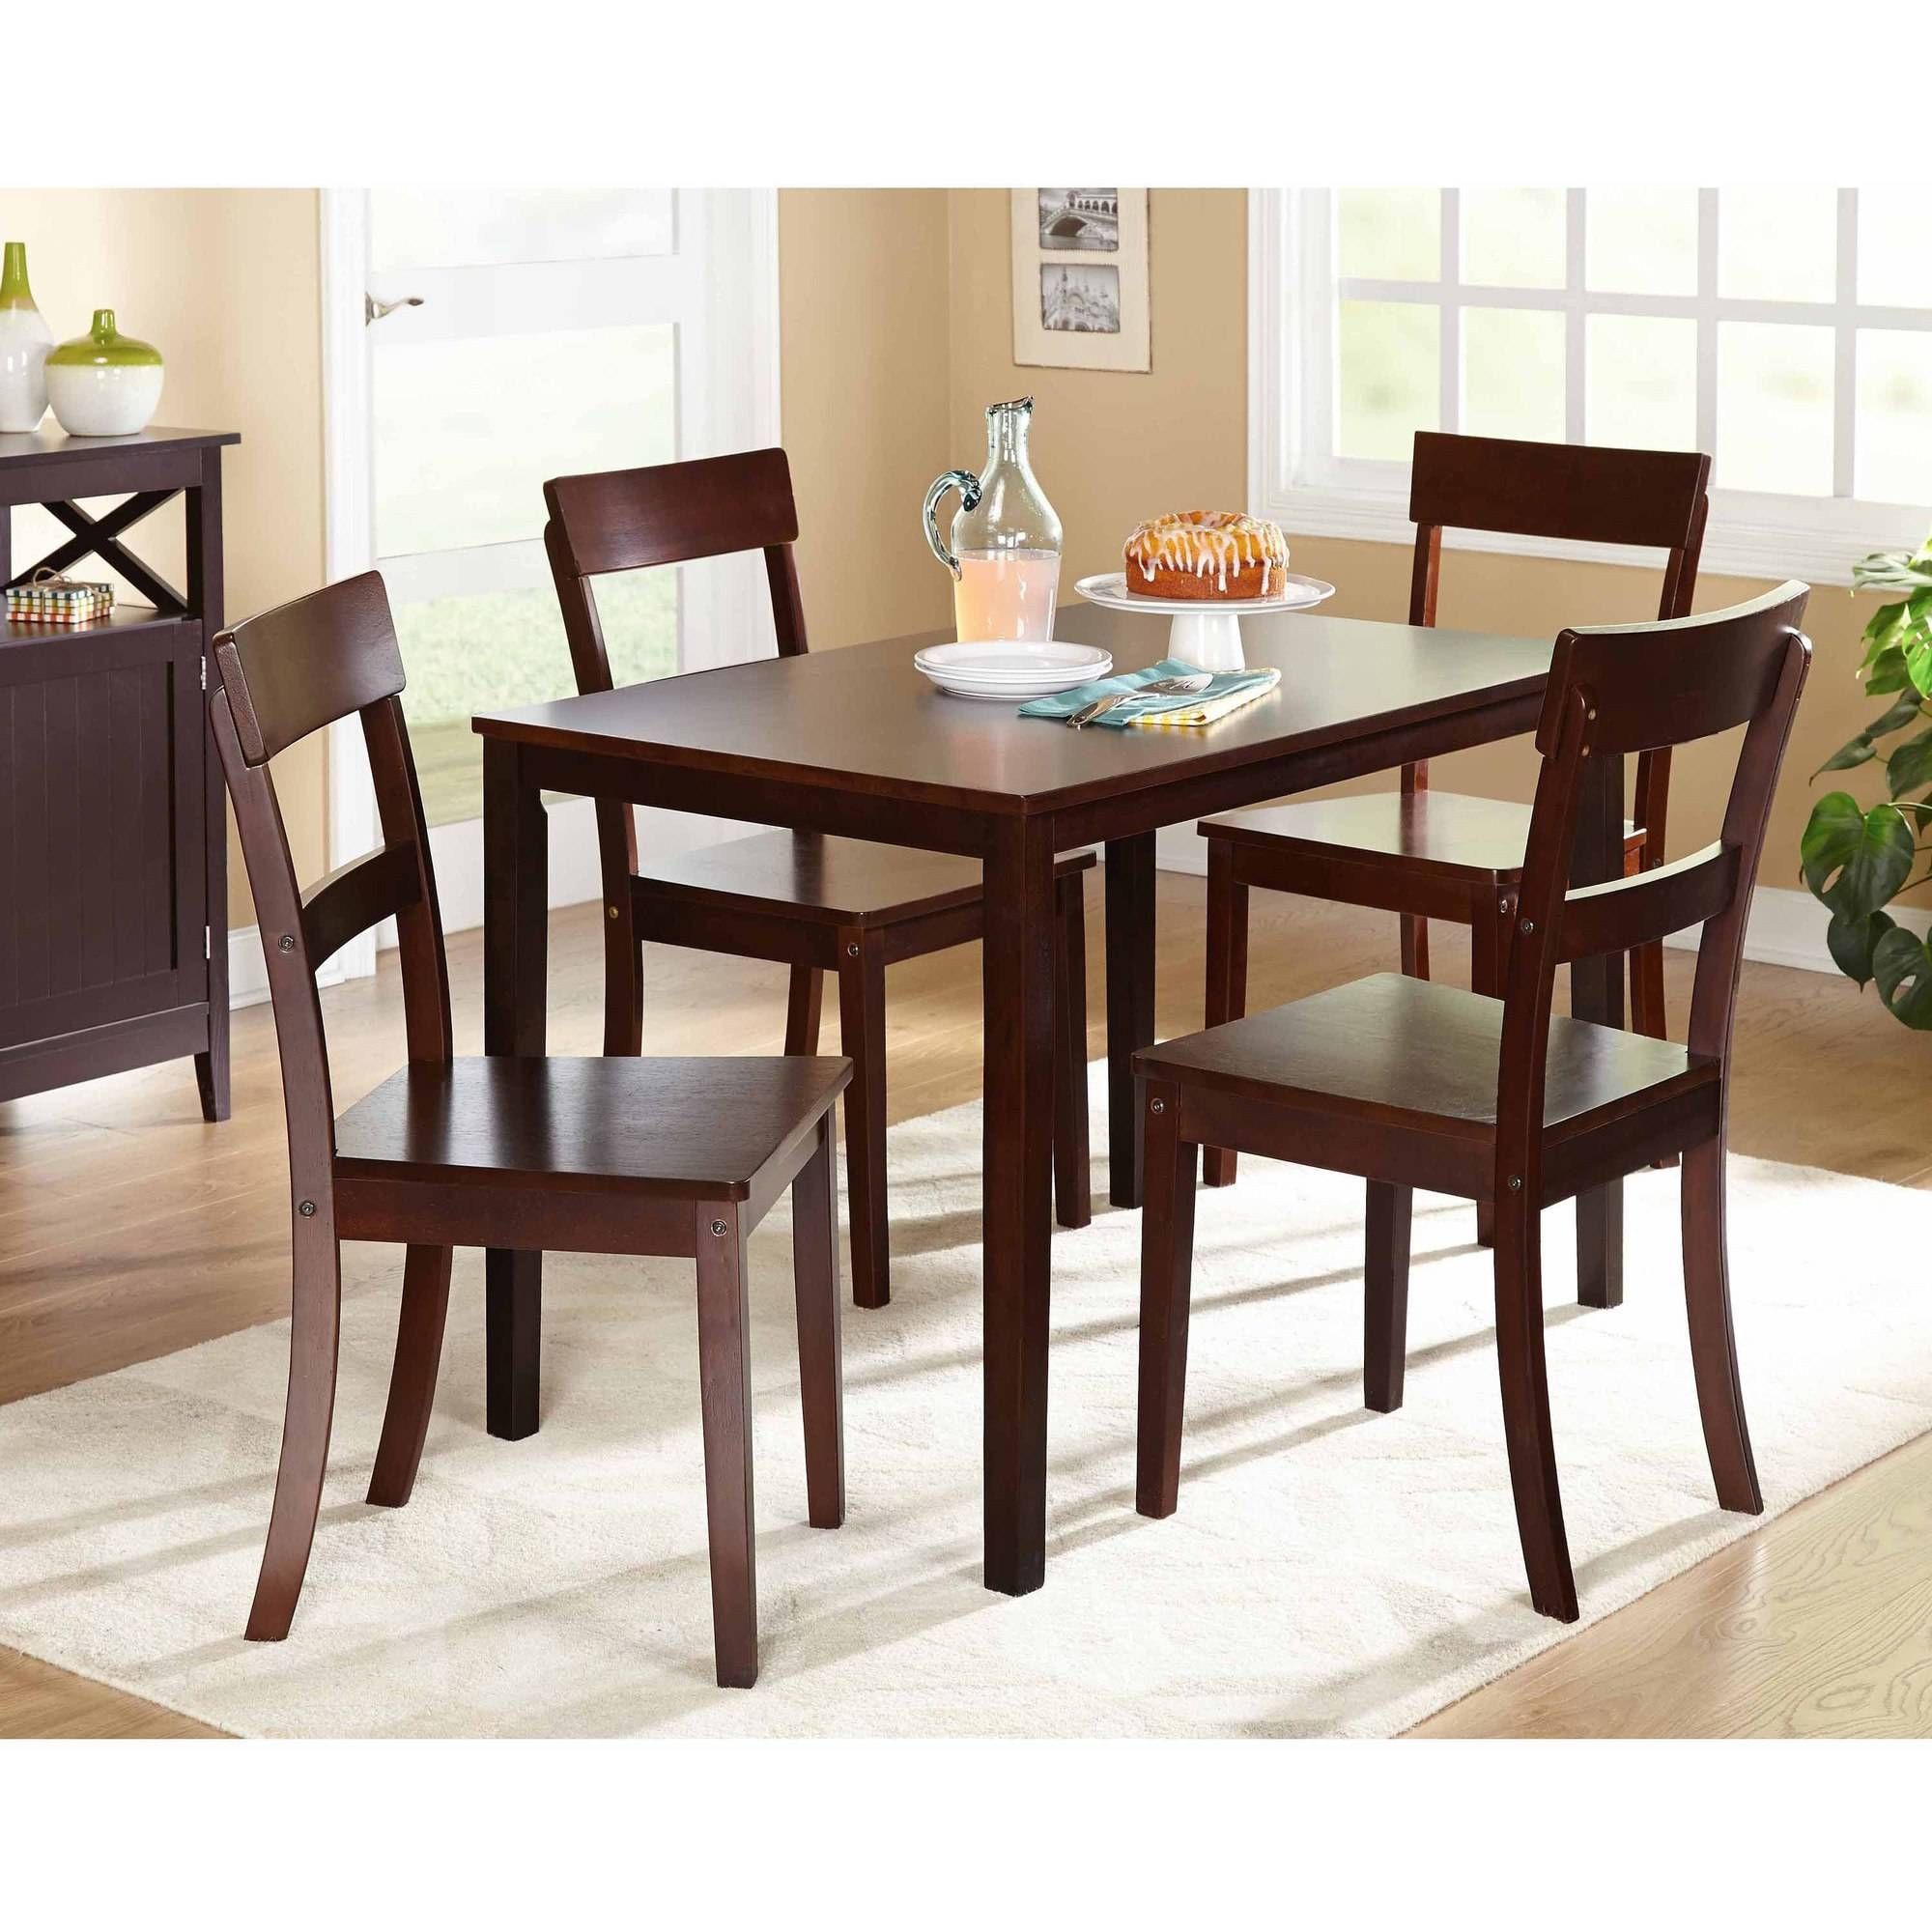 Mainstays 5 Piece Faux Marble Top Dining Set Walmart For Walmart Inside Most Current Harper 5 Piece Counter Sets (View 15 of 20)